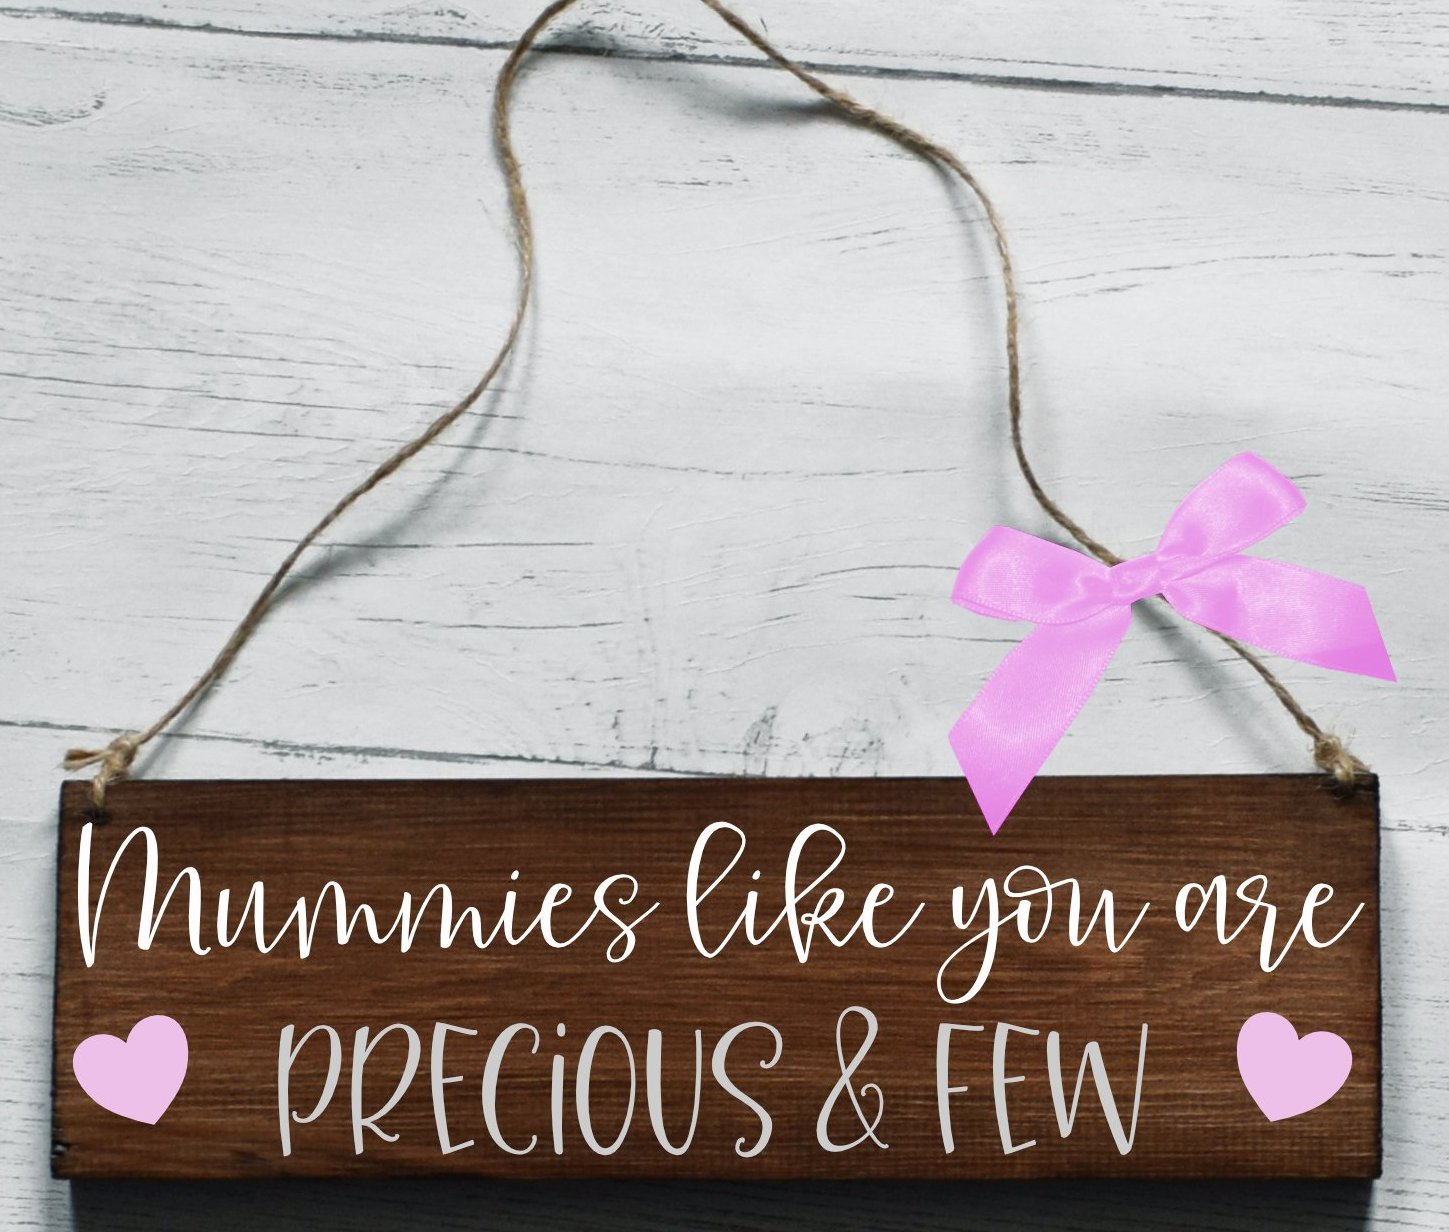 Mummies Like You Are Precious And Few Wooden Plaque, Gifts For Mummy, Mummy Mum Plaque, Thank You Mummy, Wooden Sign, Worlds Best Mummy Gift